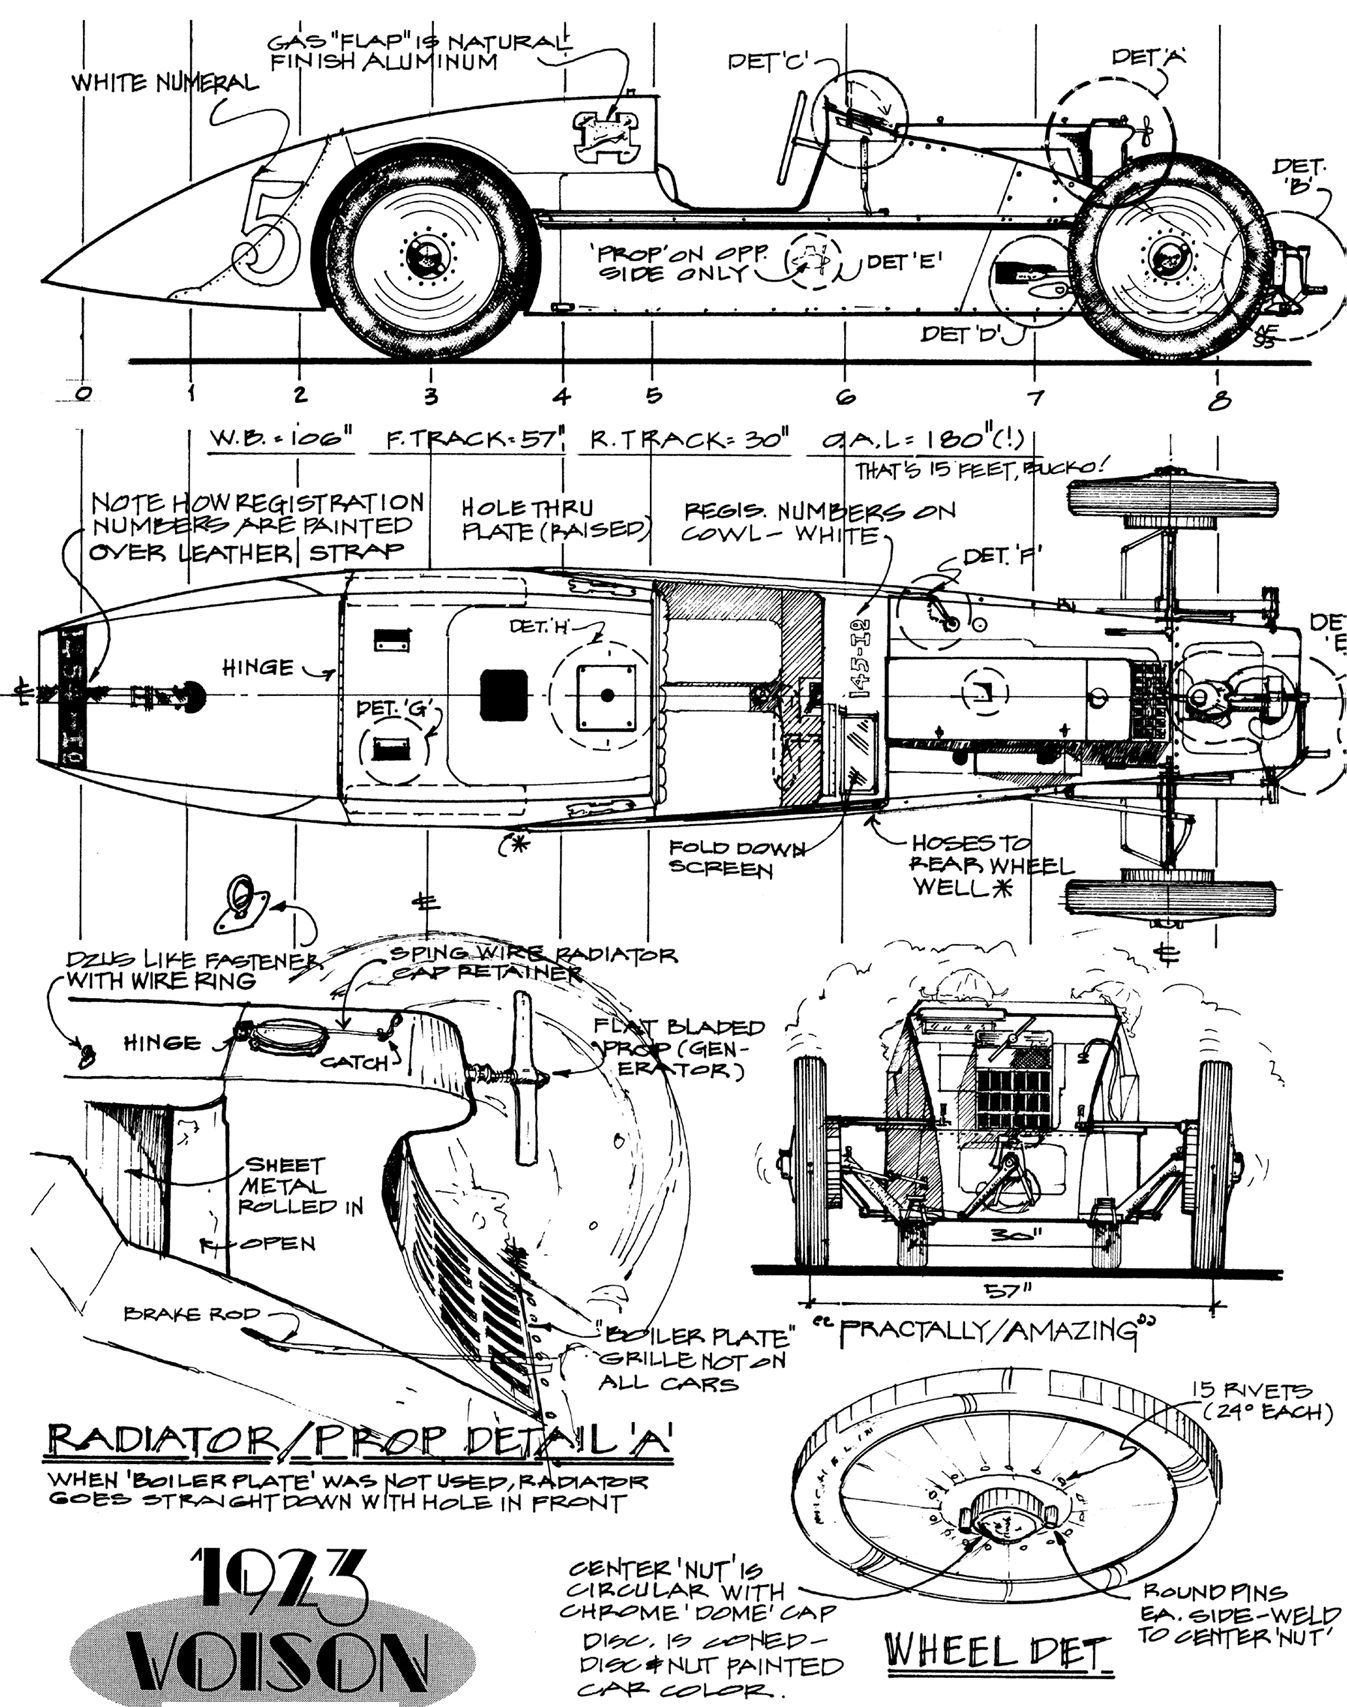 1923 cyclecar plans | Art | Pinterest | Cars, Pedal car and Cycling